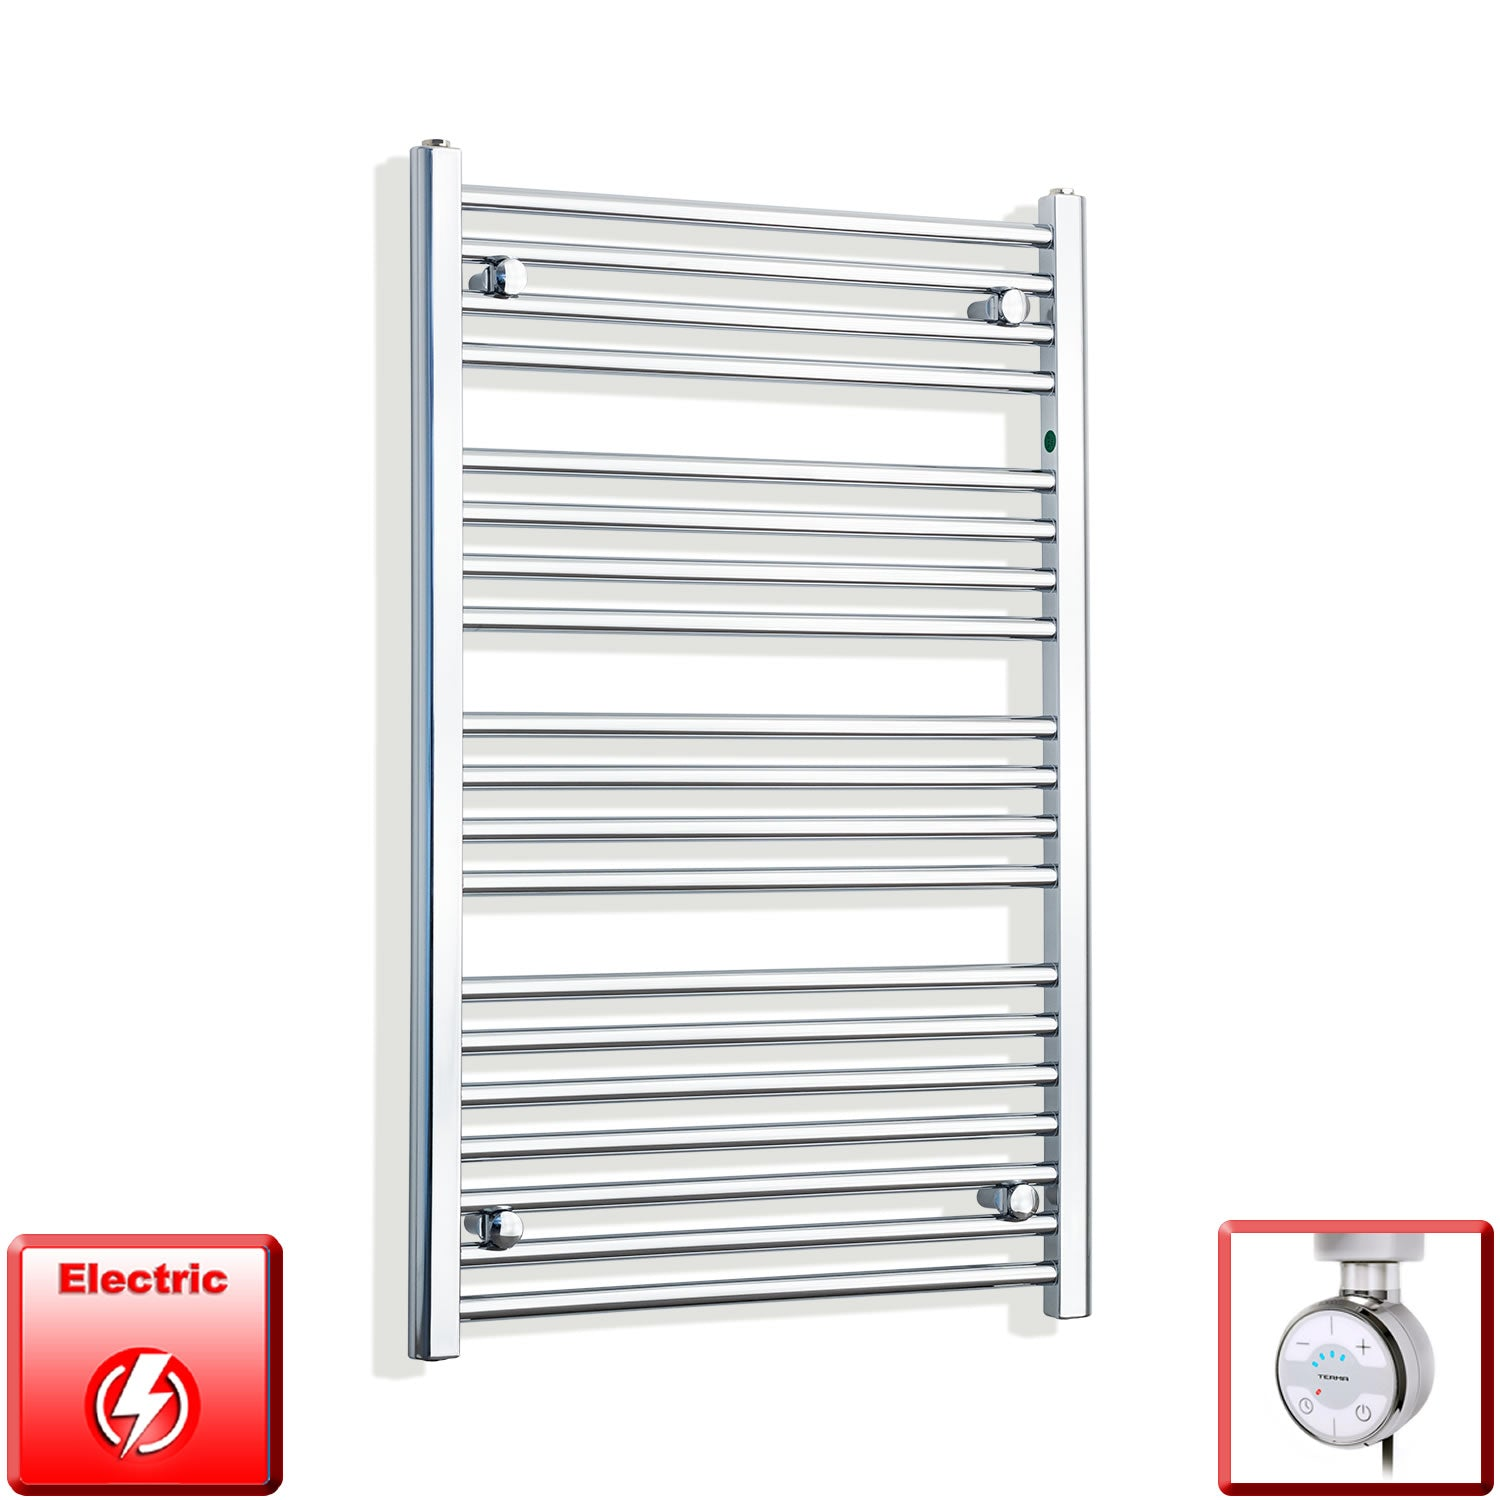 700mm Wide 1000mm High Flat Or Curved Chrome Pre-Filled Electric Heated Towel Rail Radiator HTR,MOA Thermostatic Element / Straight